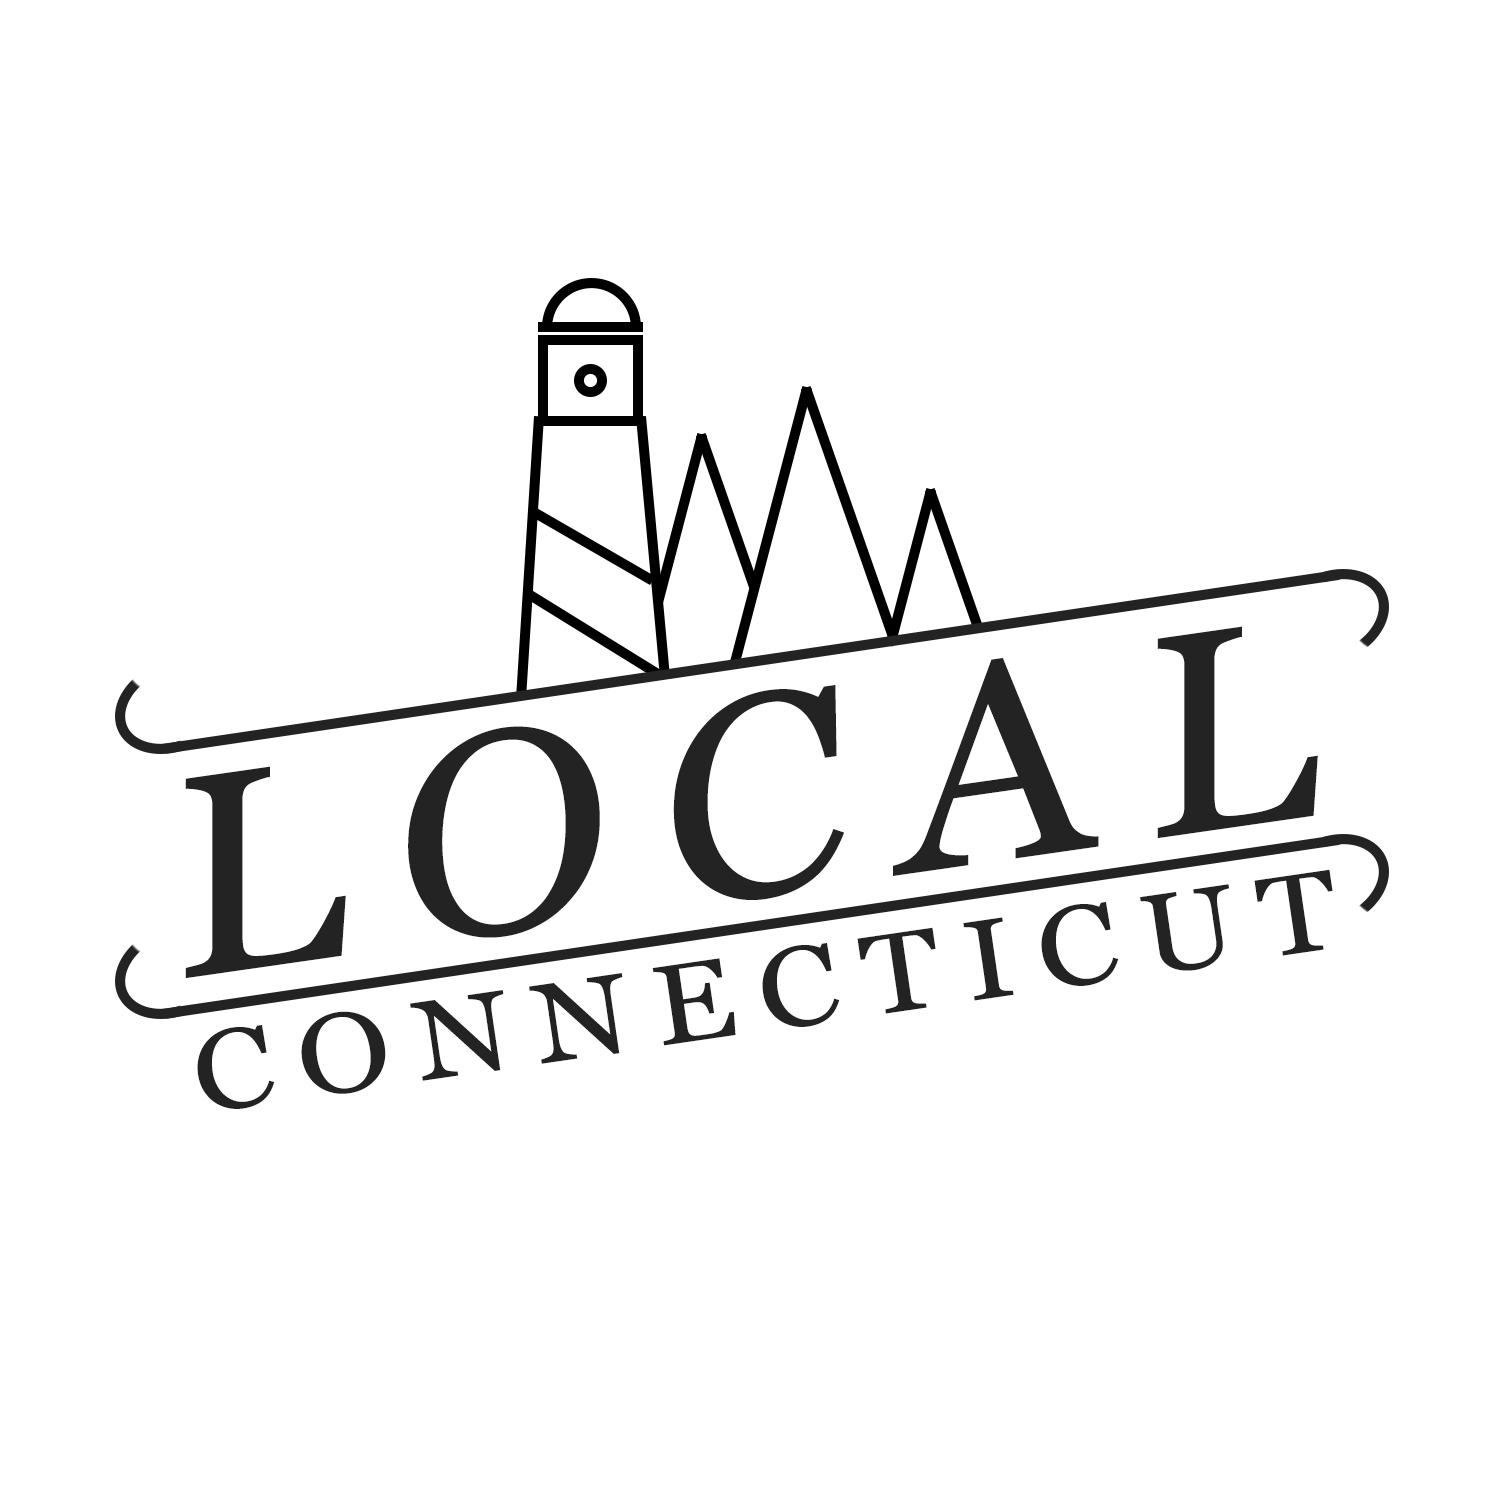 Local Connecticut